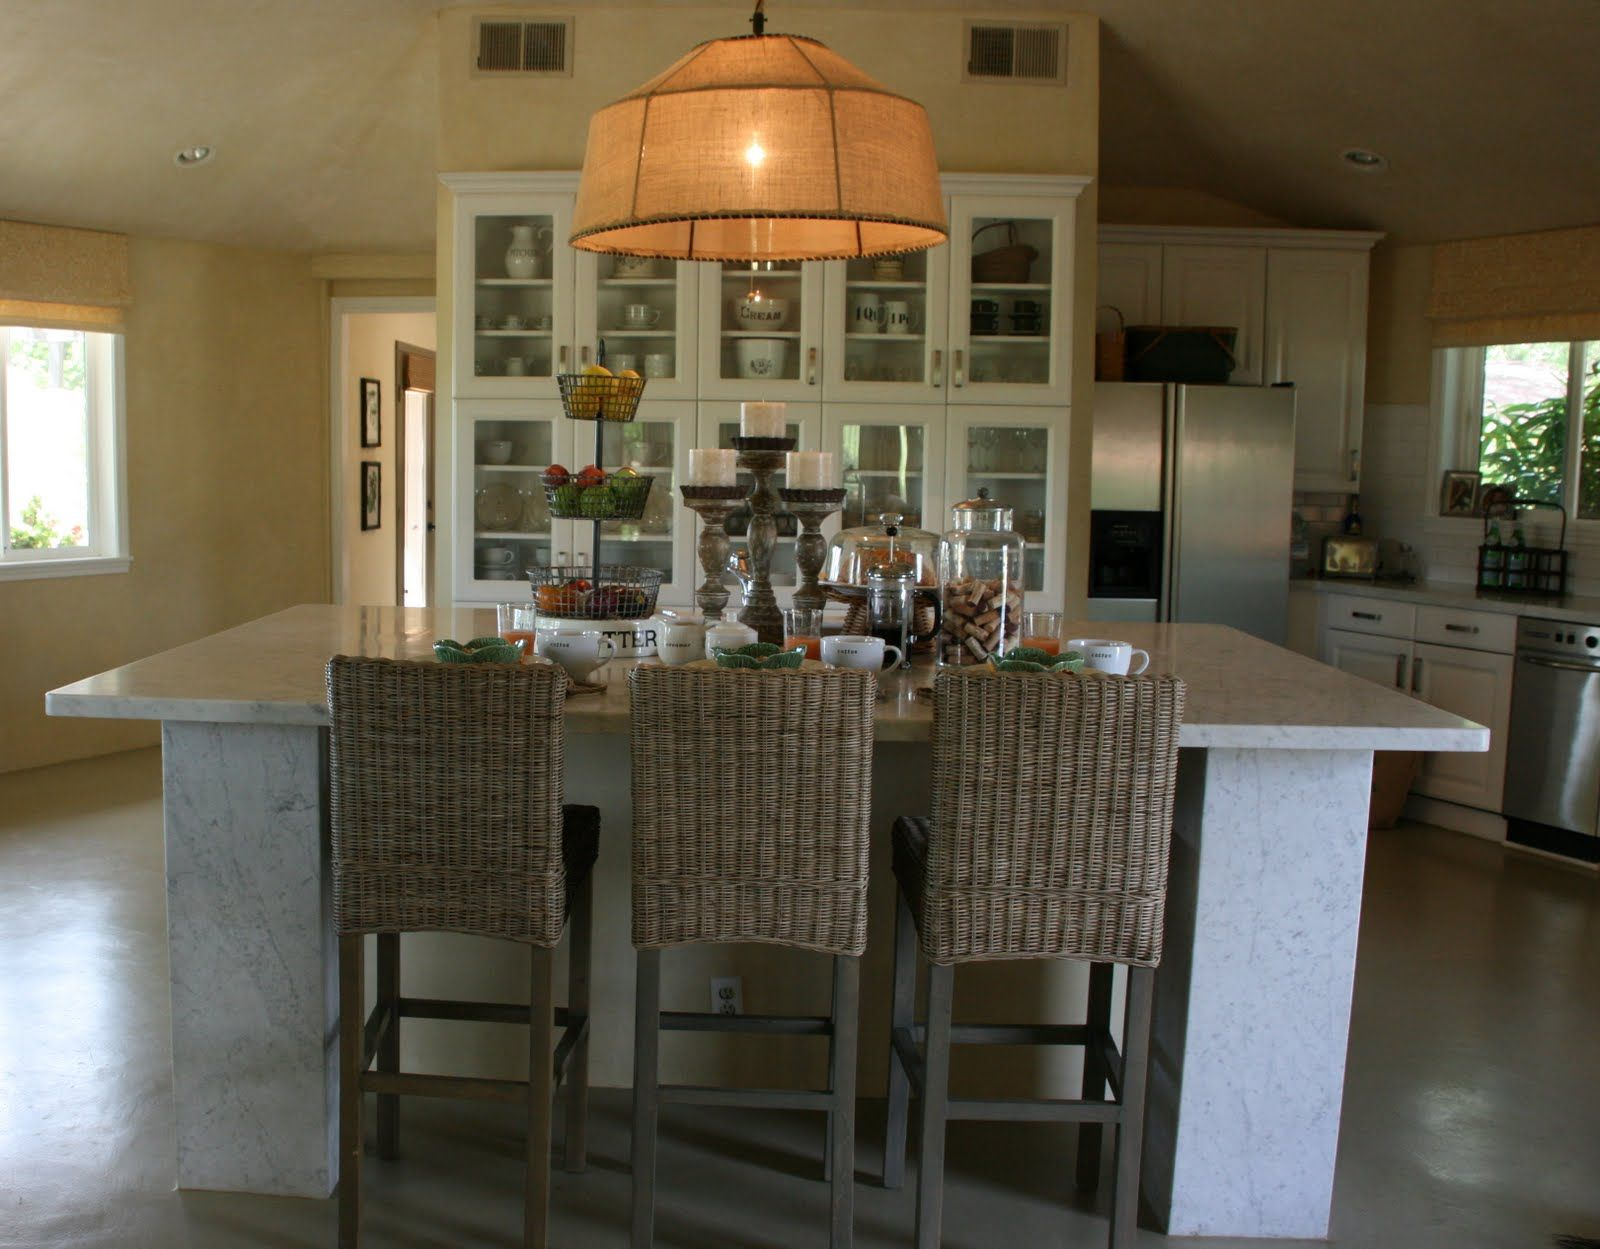 Restoration Hardware Counter Stools   Chairs for kitchen island ...